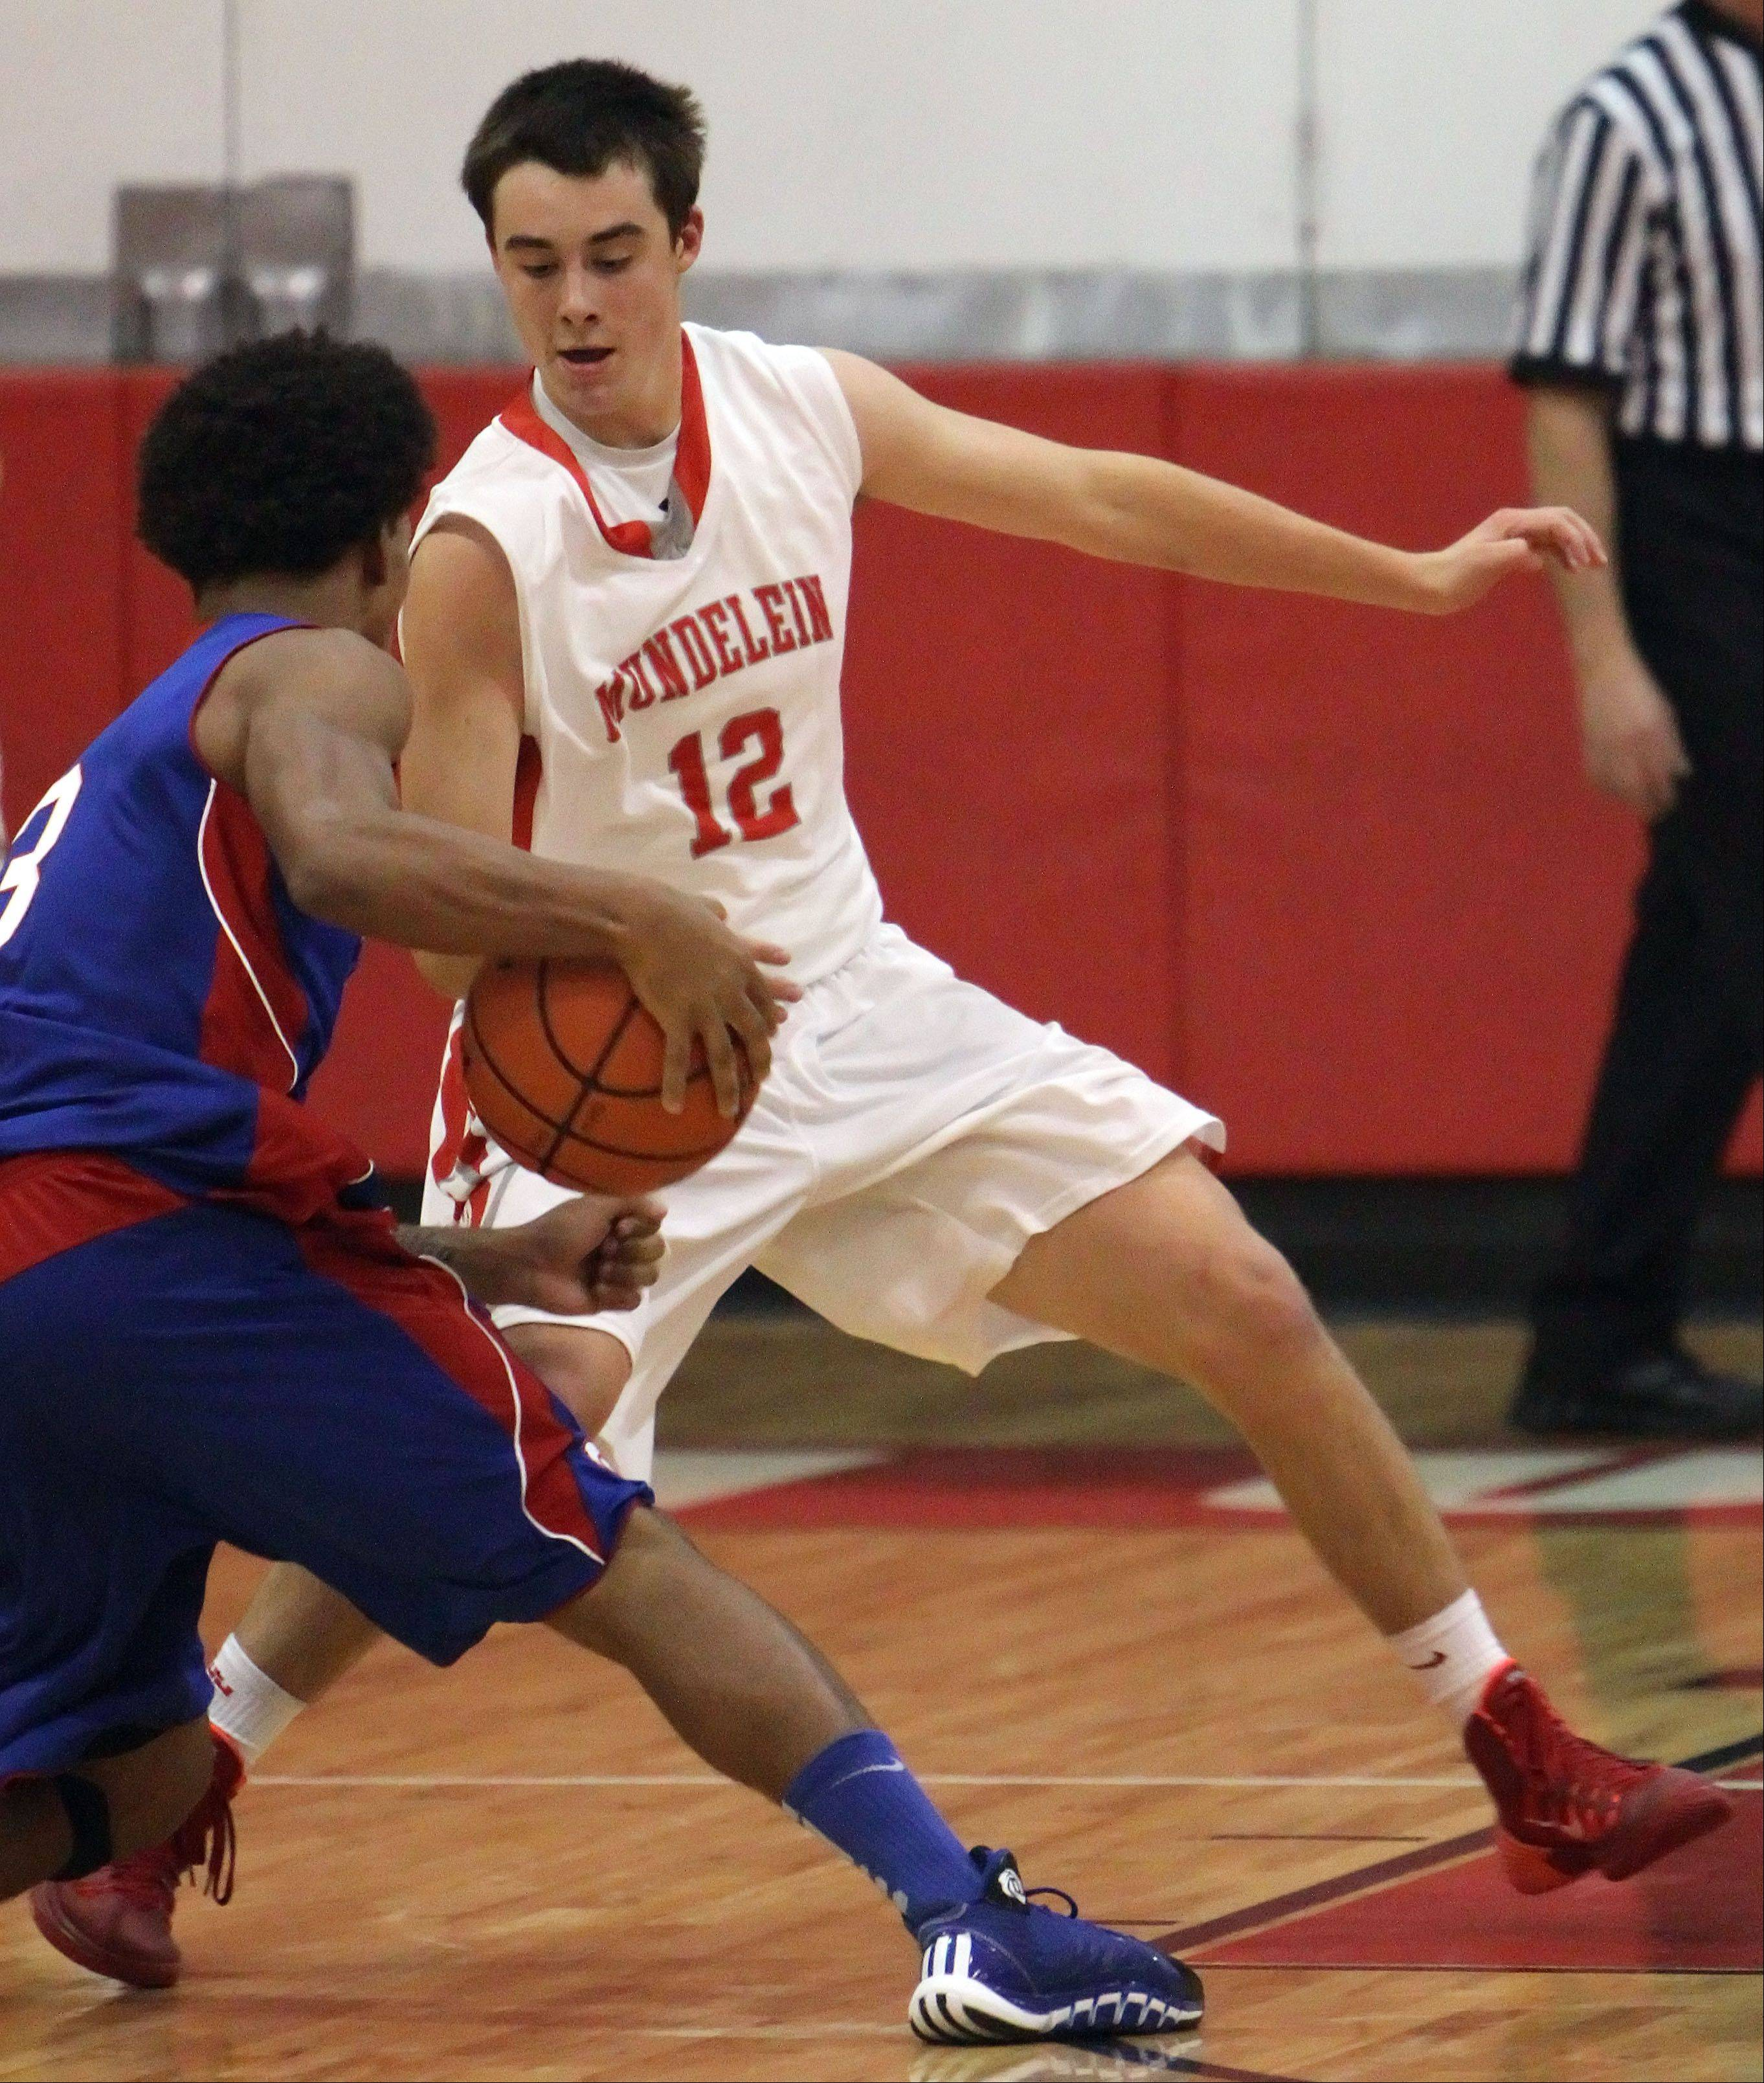 Mundelein's Derek Parola, defends against Lakes' Devyn Cedzidlo on Tuesday at Mundelein.